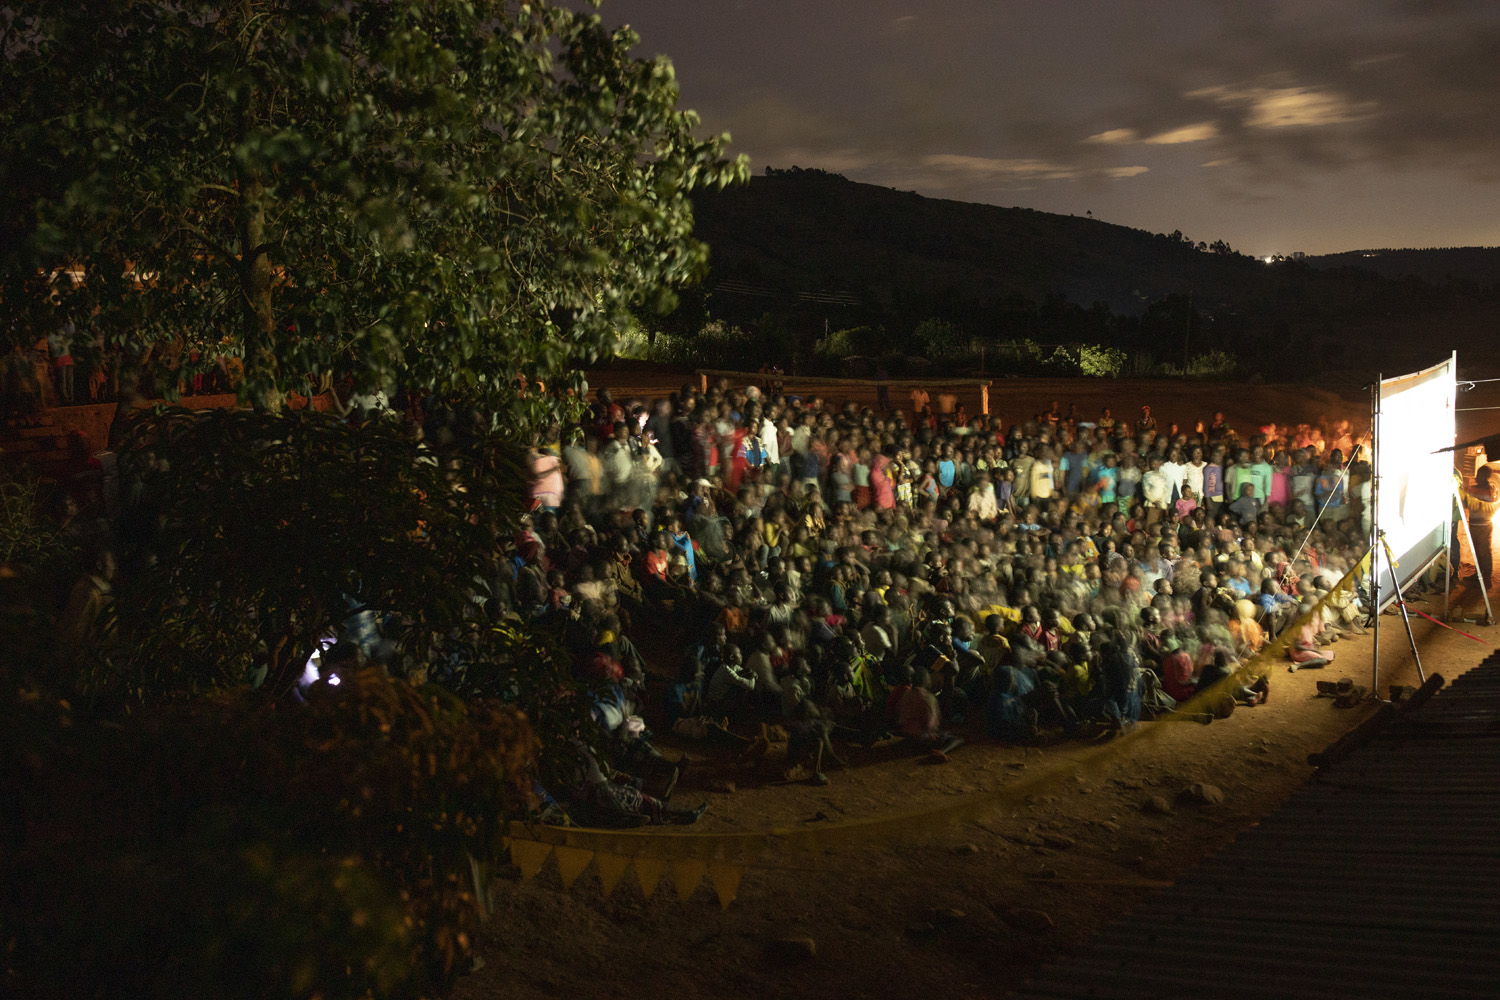 Large audience solar powered movie screening in Malawi